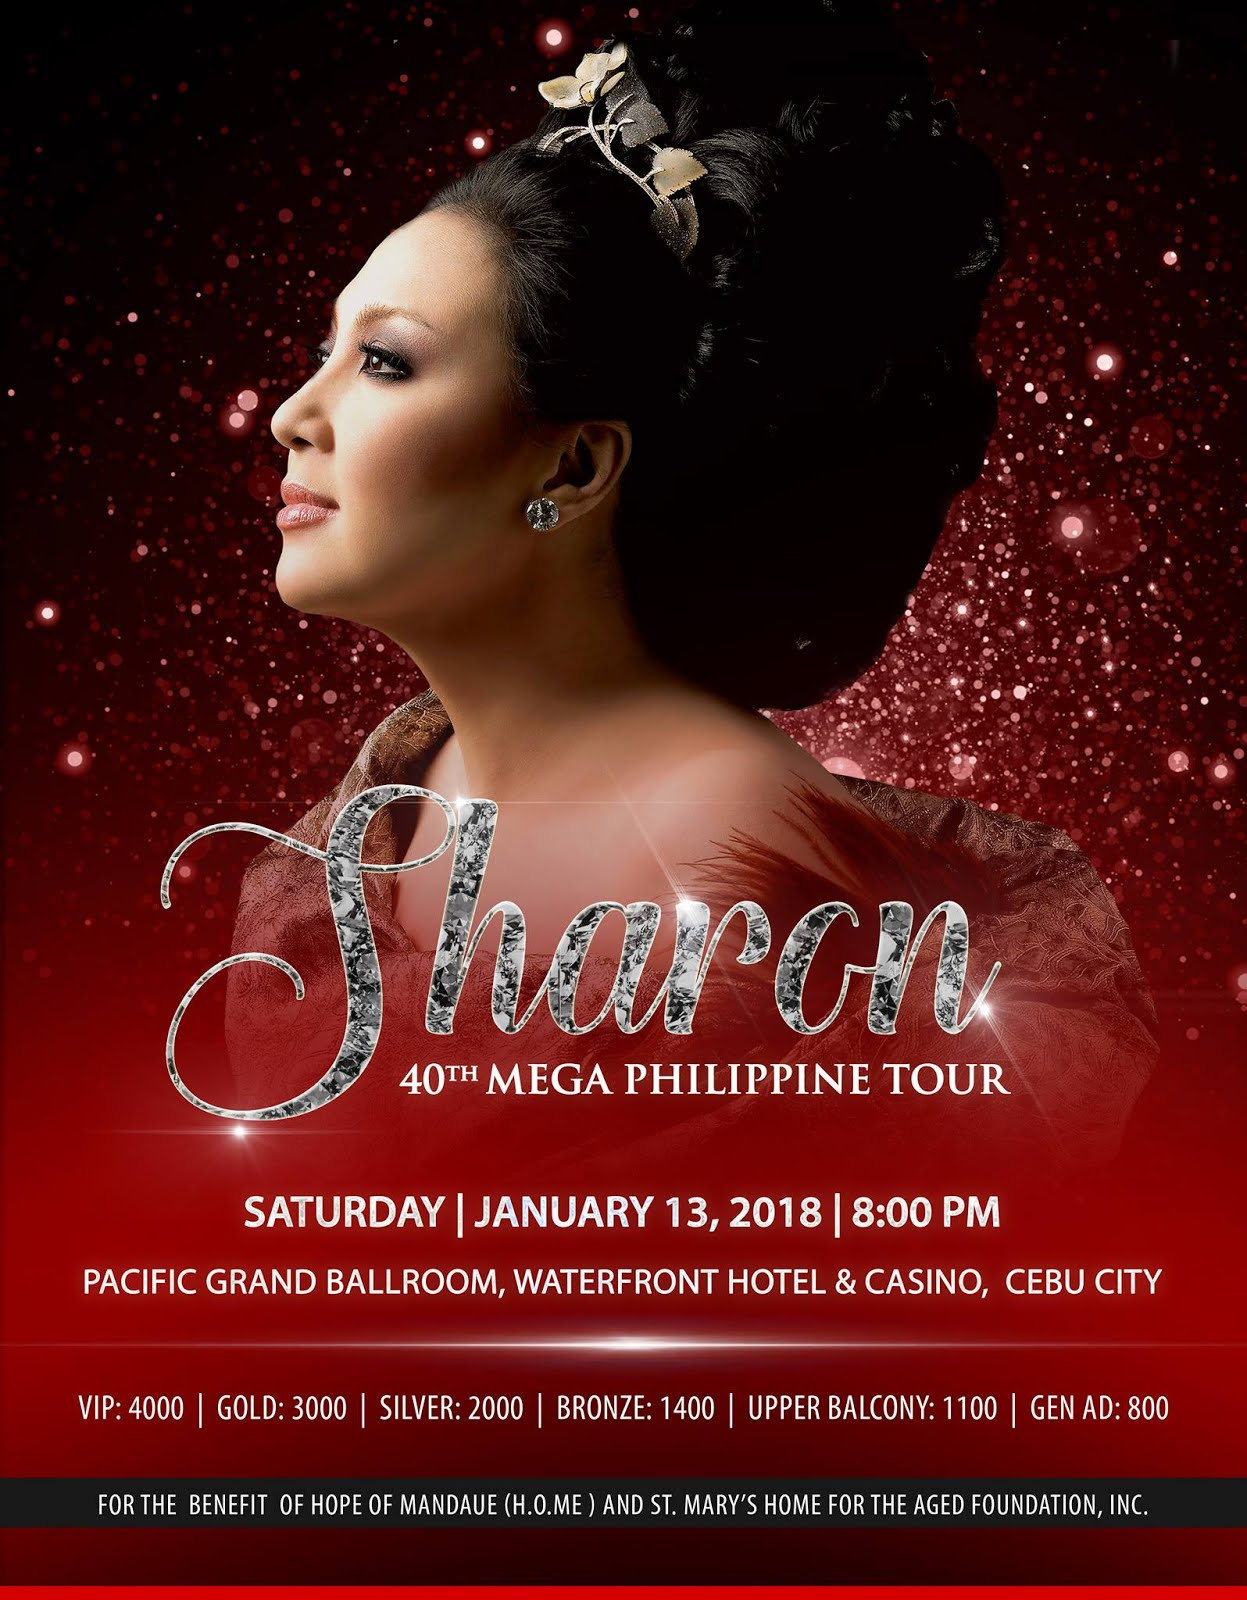 Cebu Tour on Jan. 13, 2018